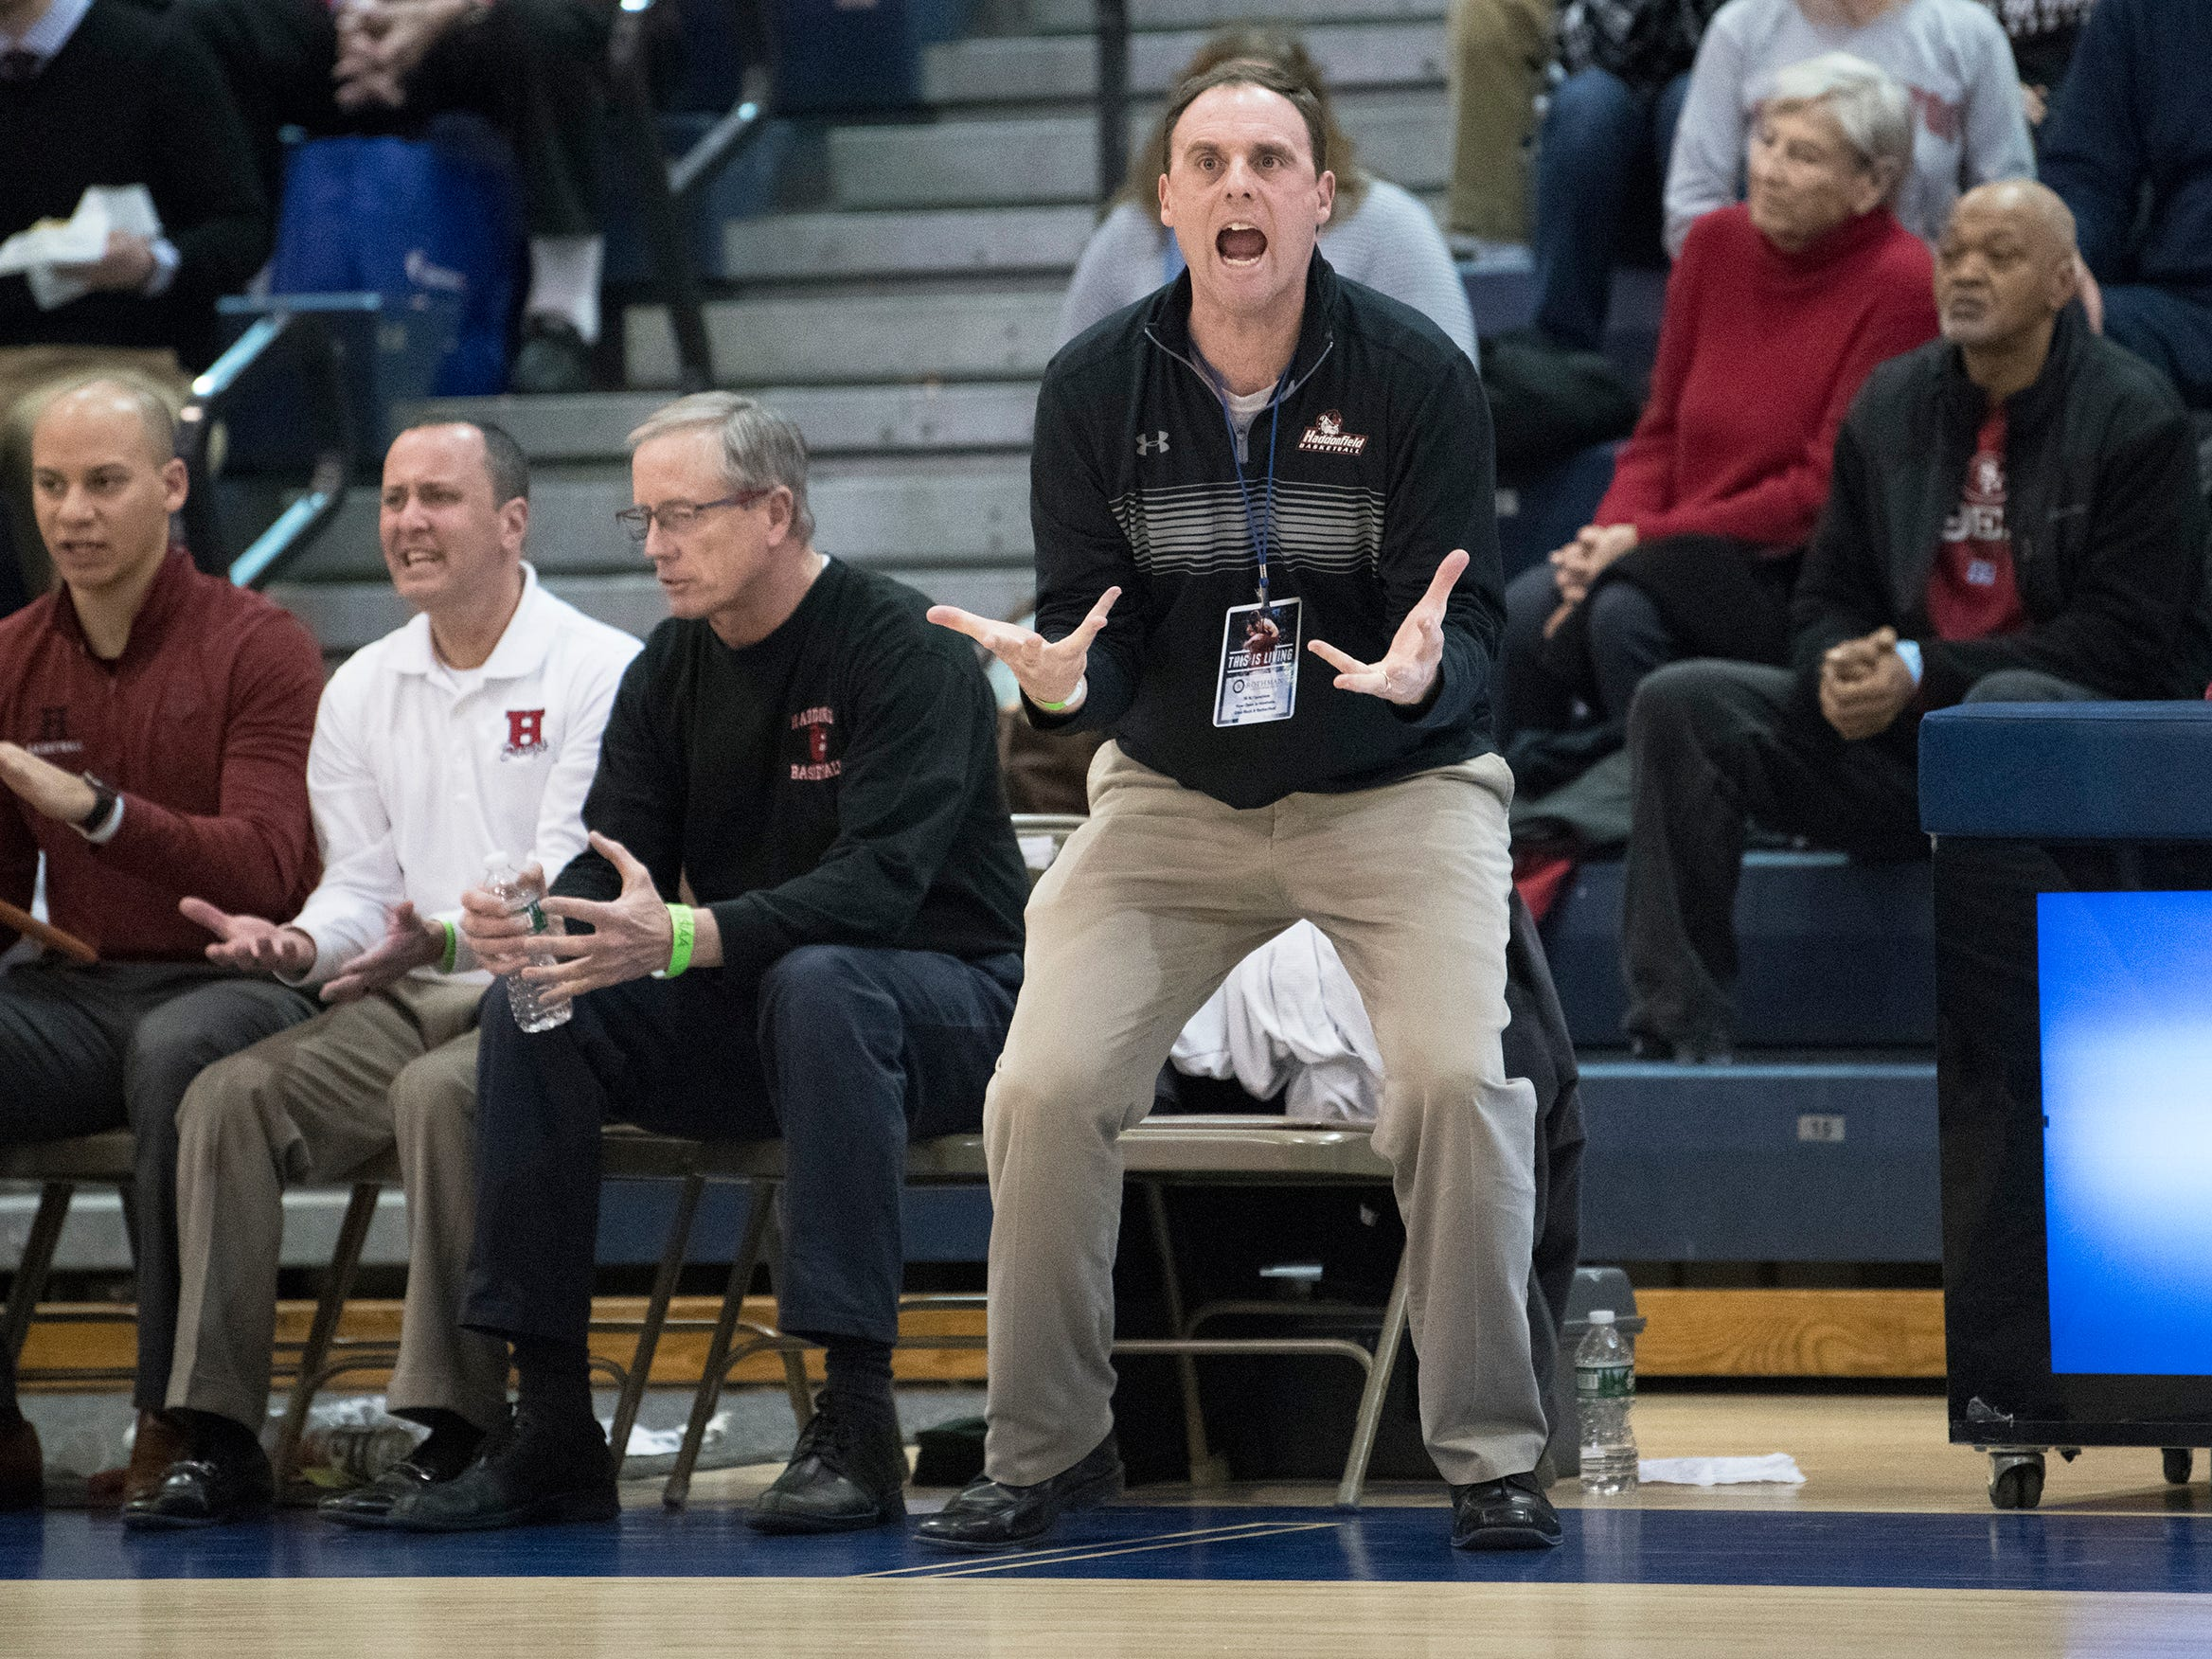 Haddonfield High School's boys basketball coach Paul Wiedeman reacts to a call against Haddonfield  during the boys basketball Tournament of Champions quarterfinal game between Haddonfield and Moorestown. played at Toms River North High School on Wednesday, March 13, 2019.   Moorestown defeated Haddonfield, 60-59.